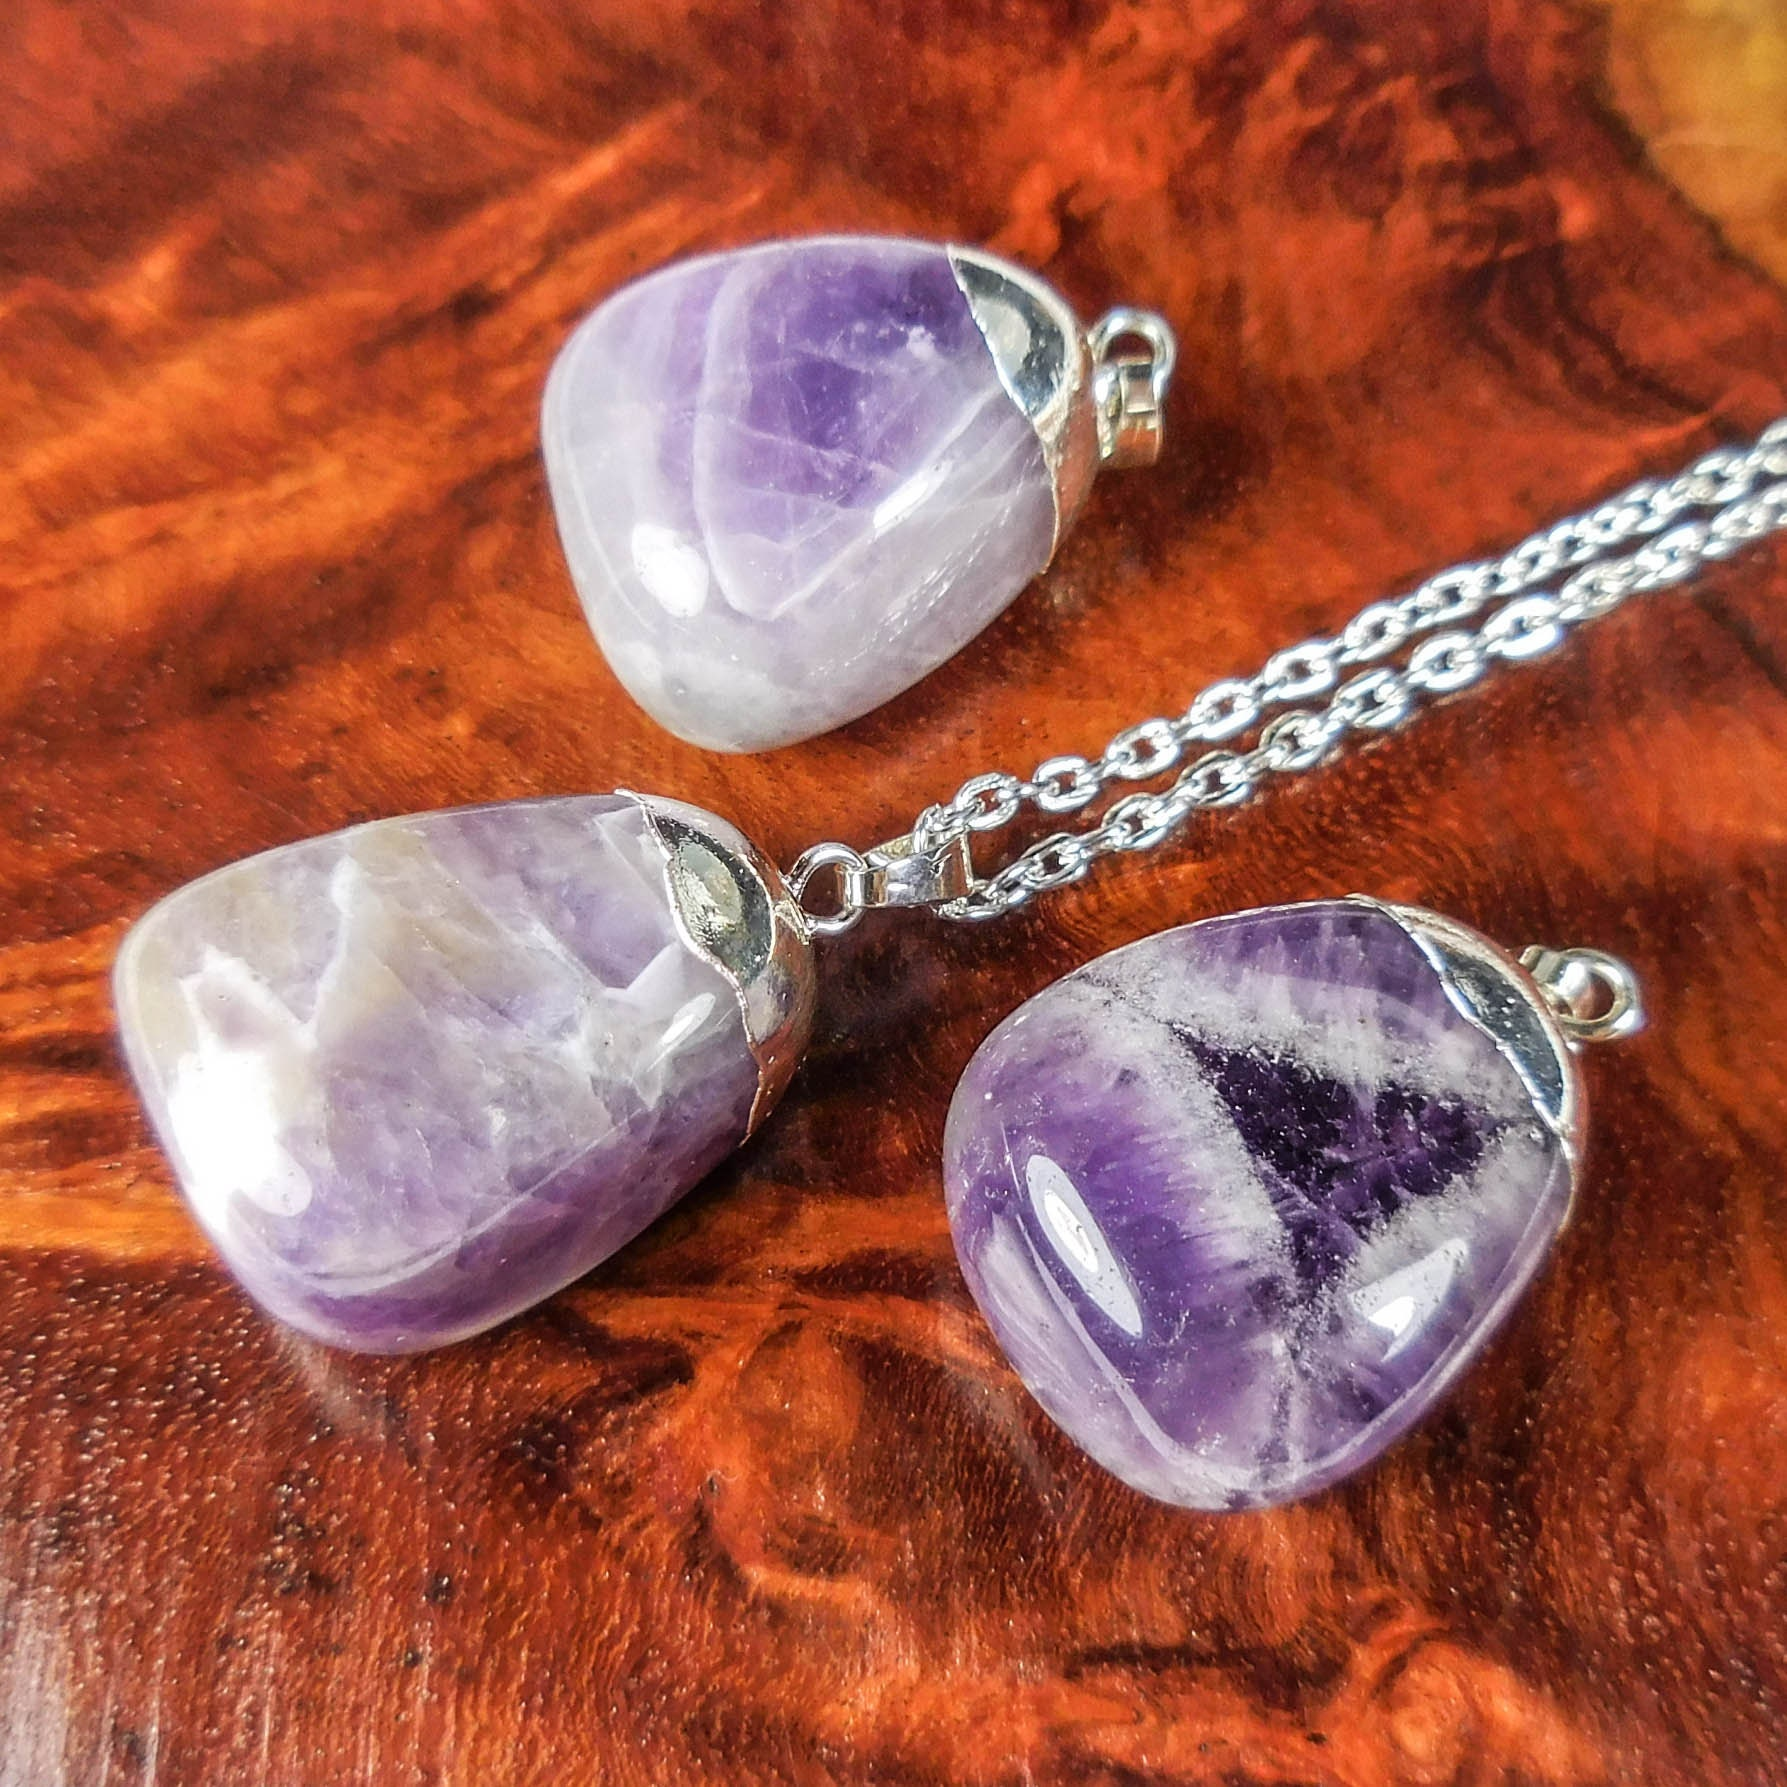 Handmade Banded Amethyst Pendant Necklace